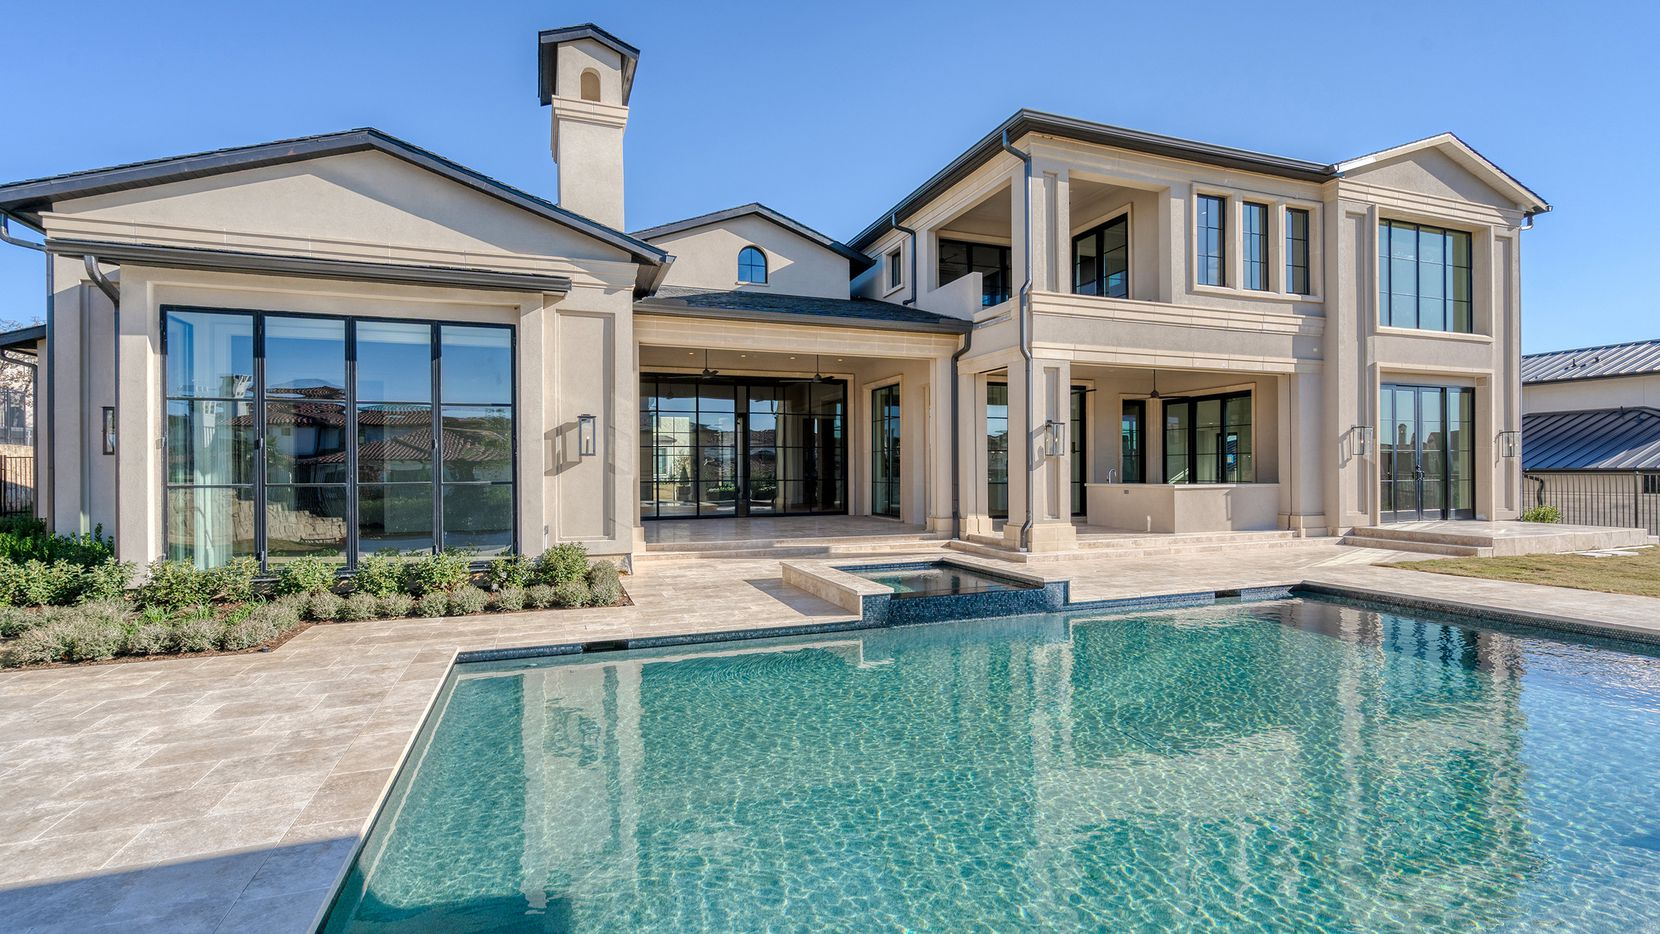 The Allman firm recently sold the six-bedroom residence at 2017 Valencia Cove in Westlake.